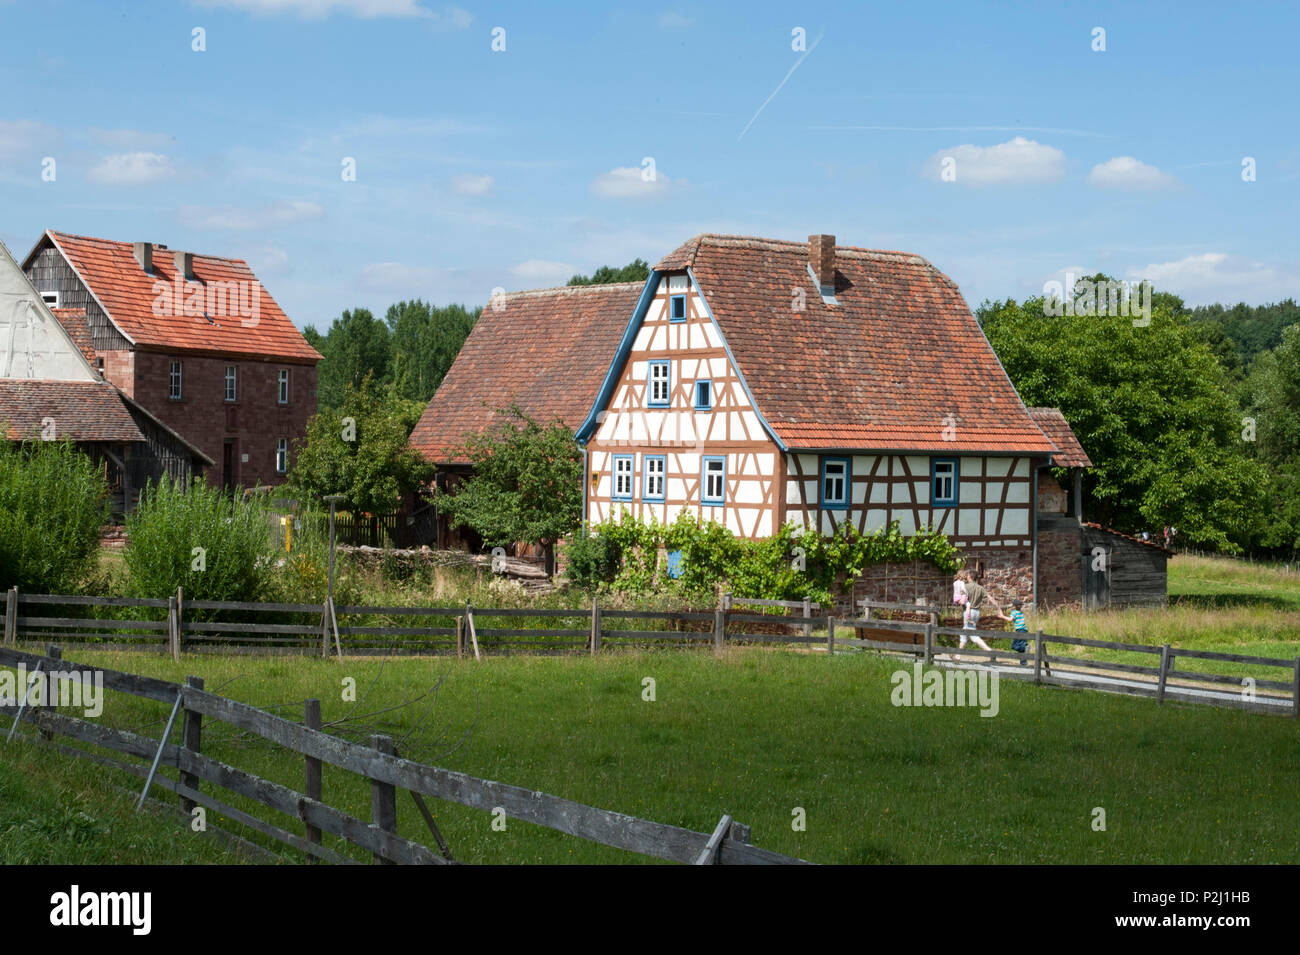 Odenwald open air museum Gottersdorf, Baden-Wuerttemberg, Germany - Stock Image